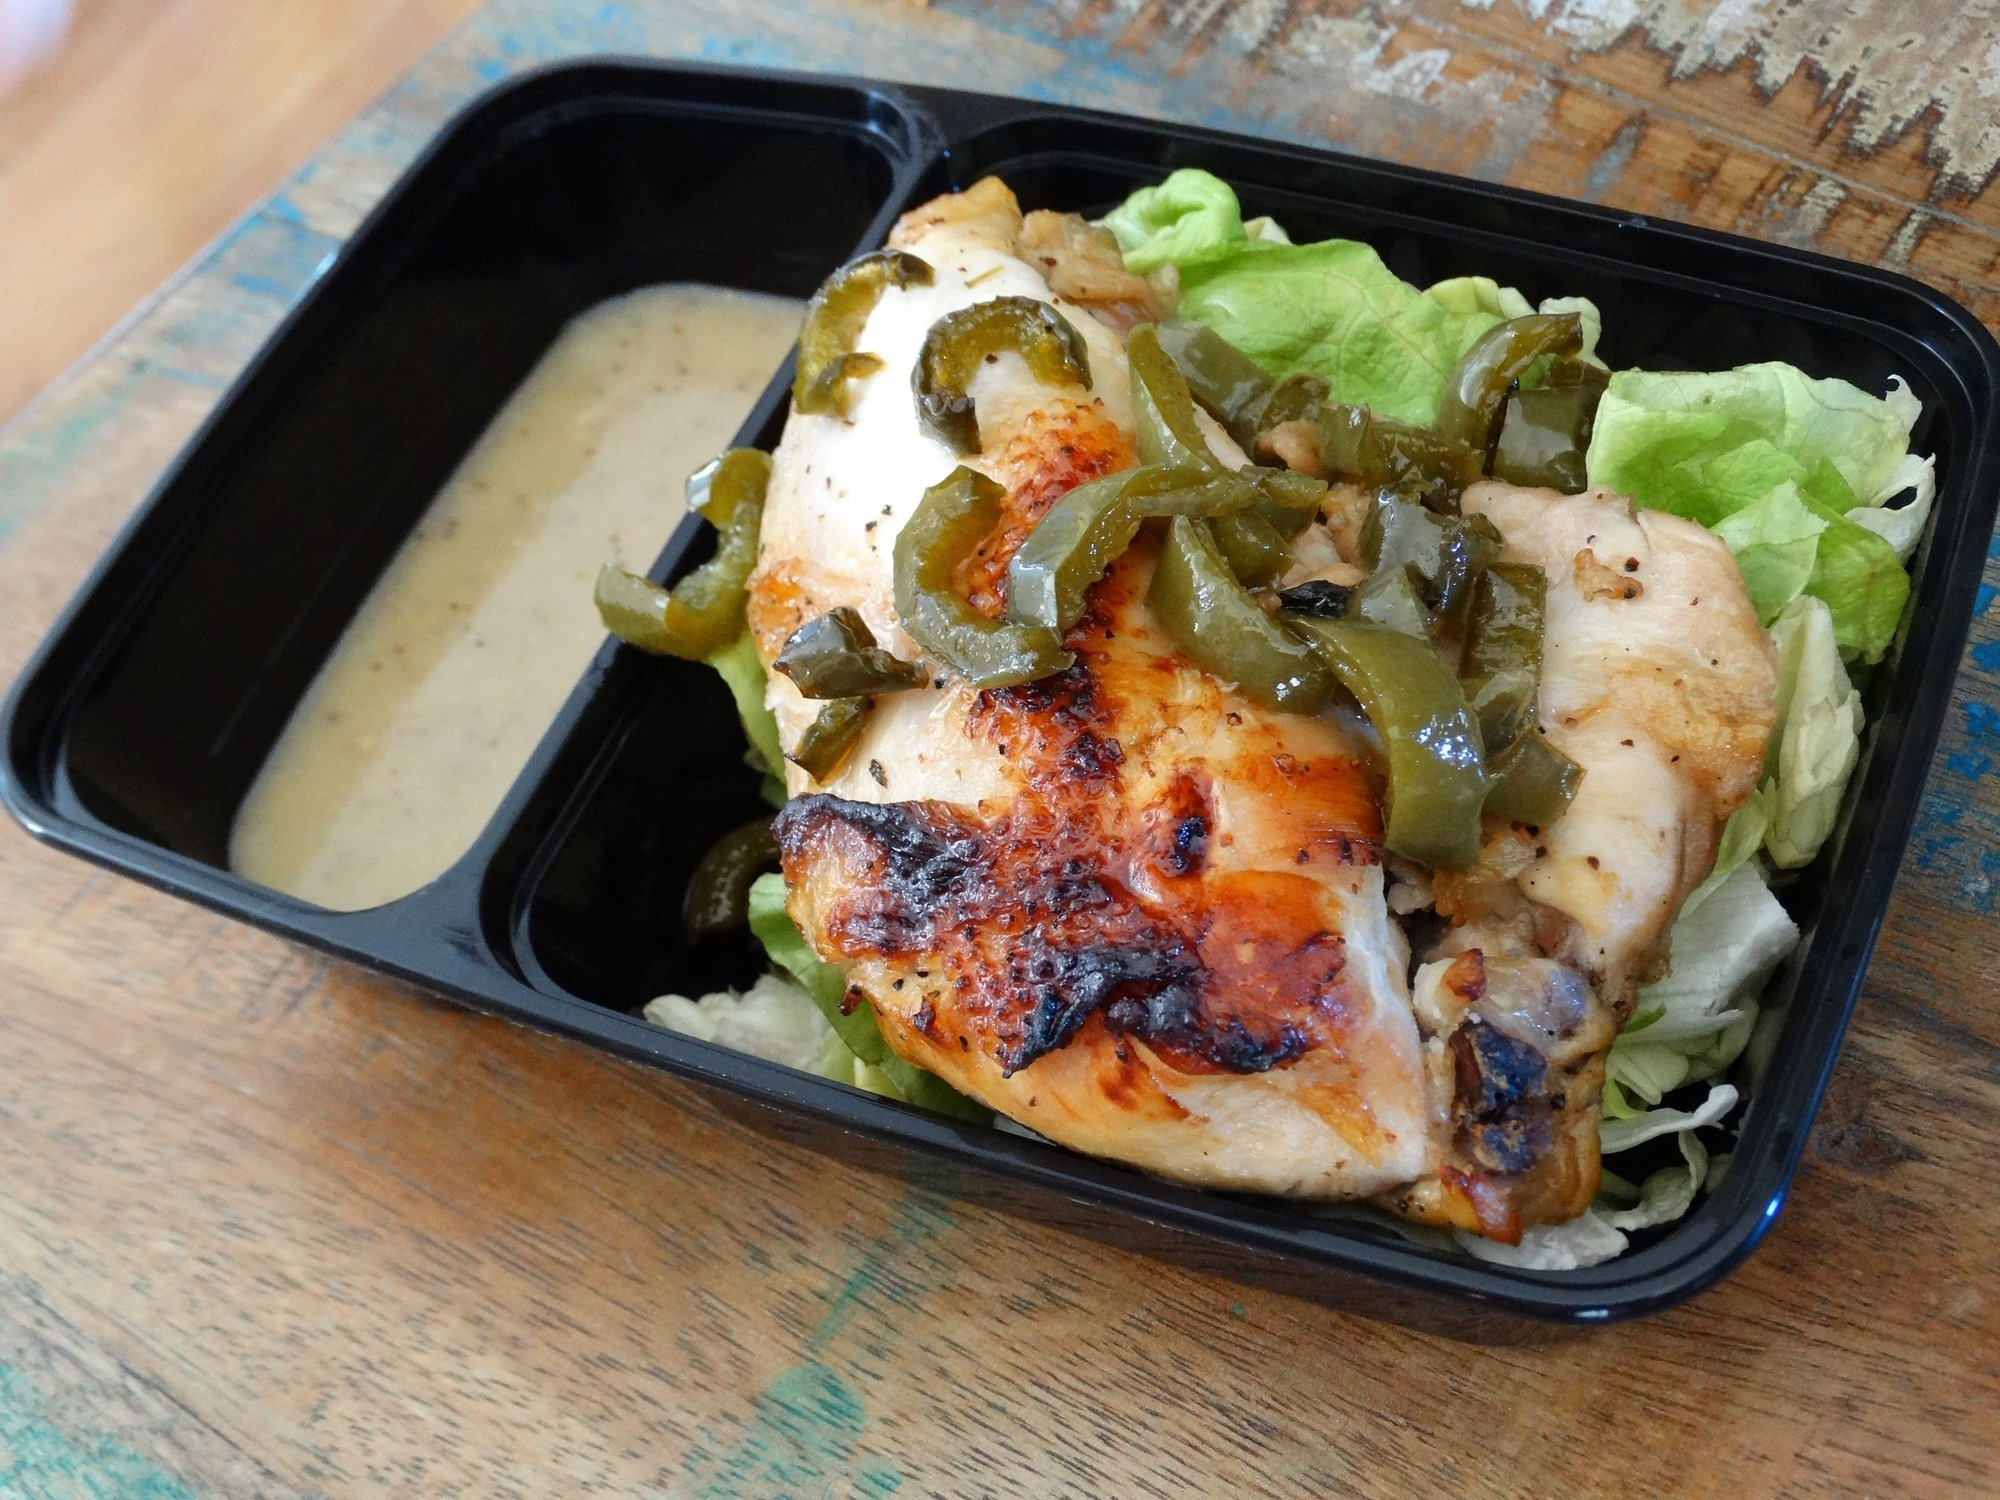 Caribbean Chicken Recipe - Use A Meat thermometer!